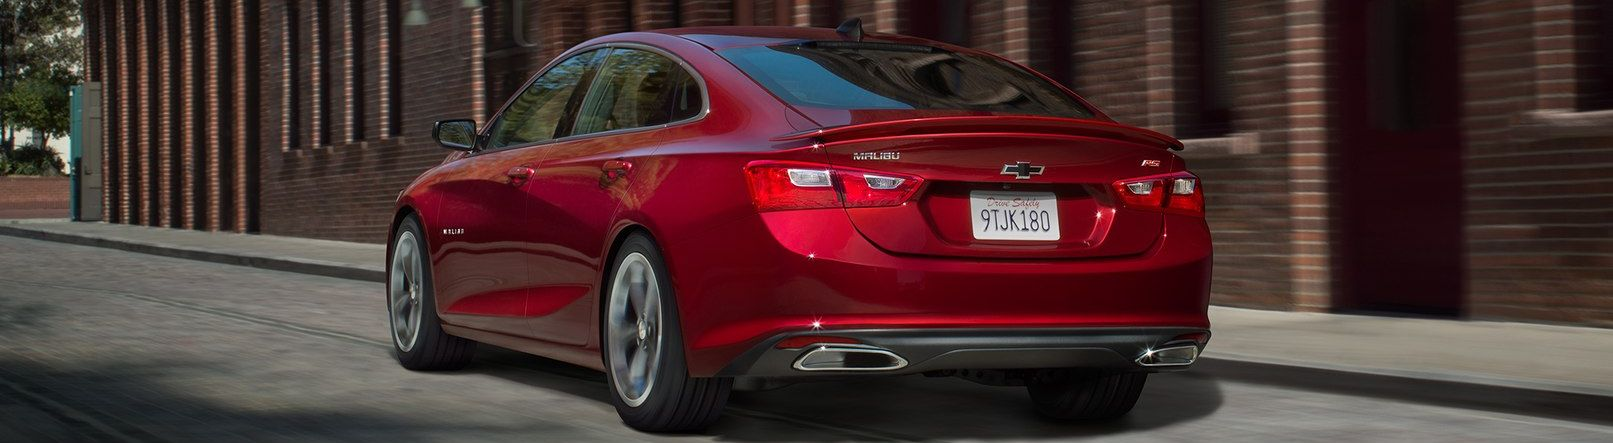 2019 Chevrolet Malibu Coming Soon in Carlsbad, CA